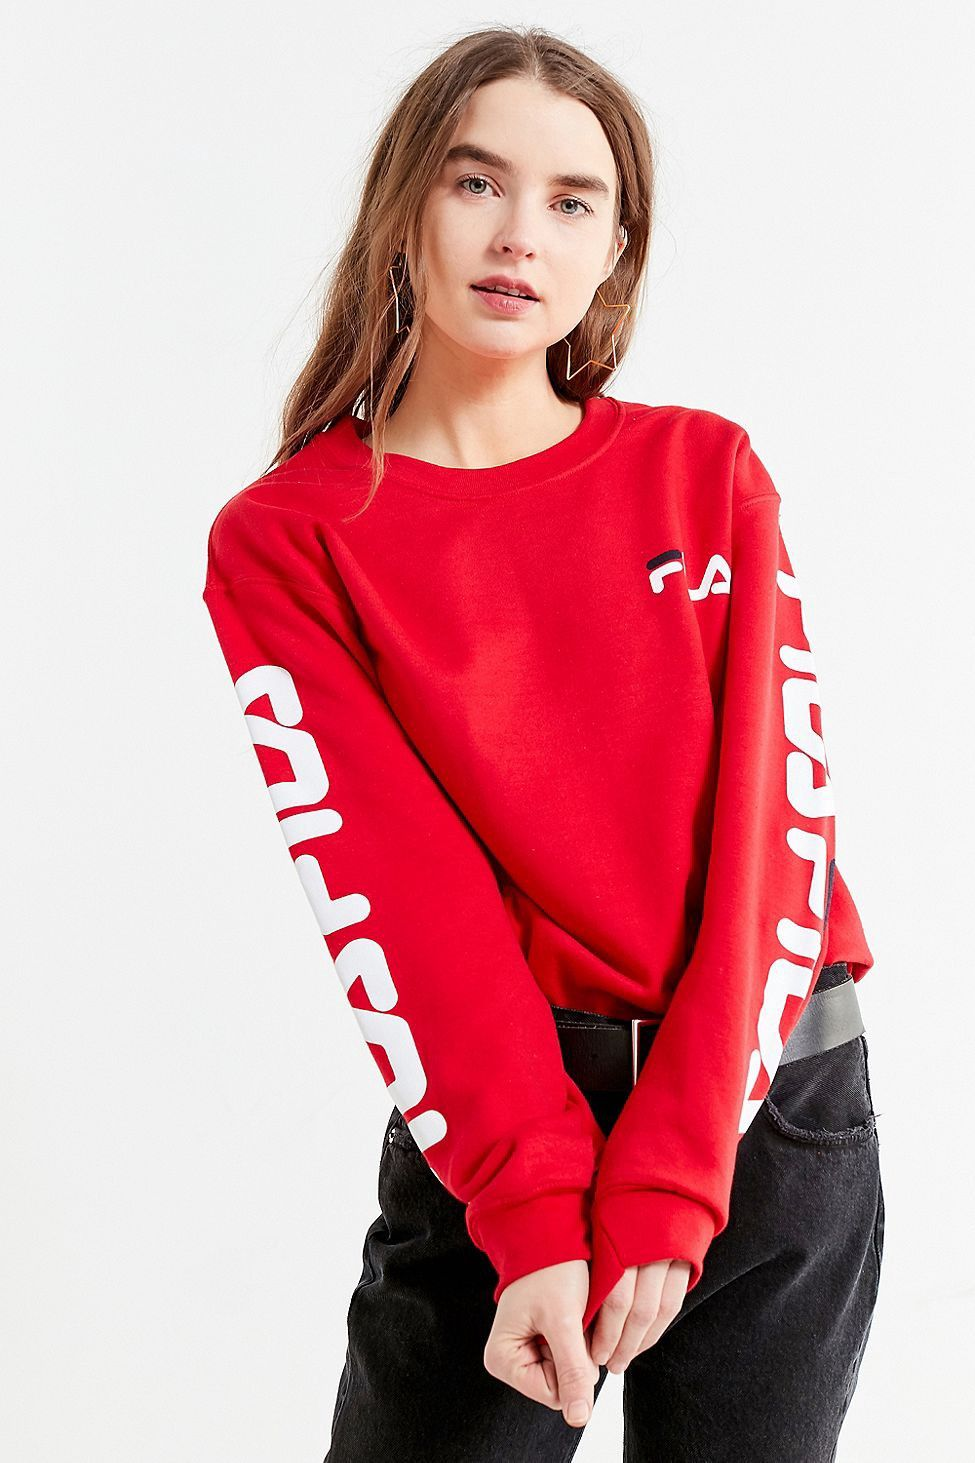 87502f2c78b Urban Outfitters Fila + Uo Double Logo Crew-Neck Sweatshirt - L ...